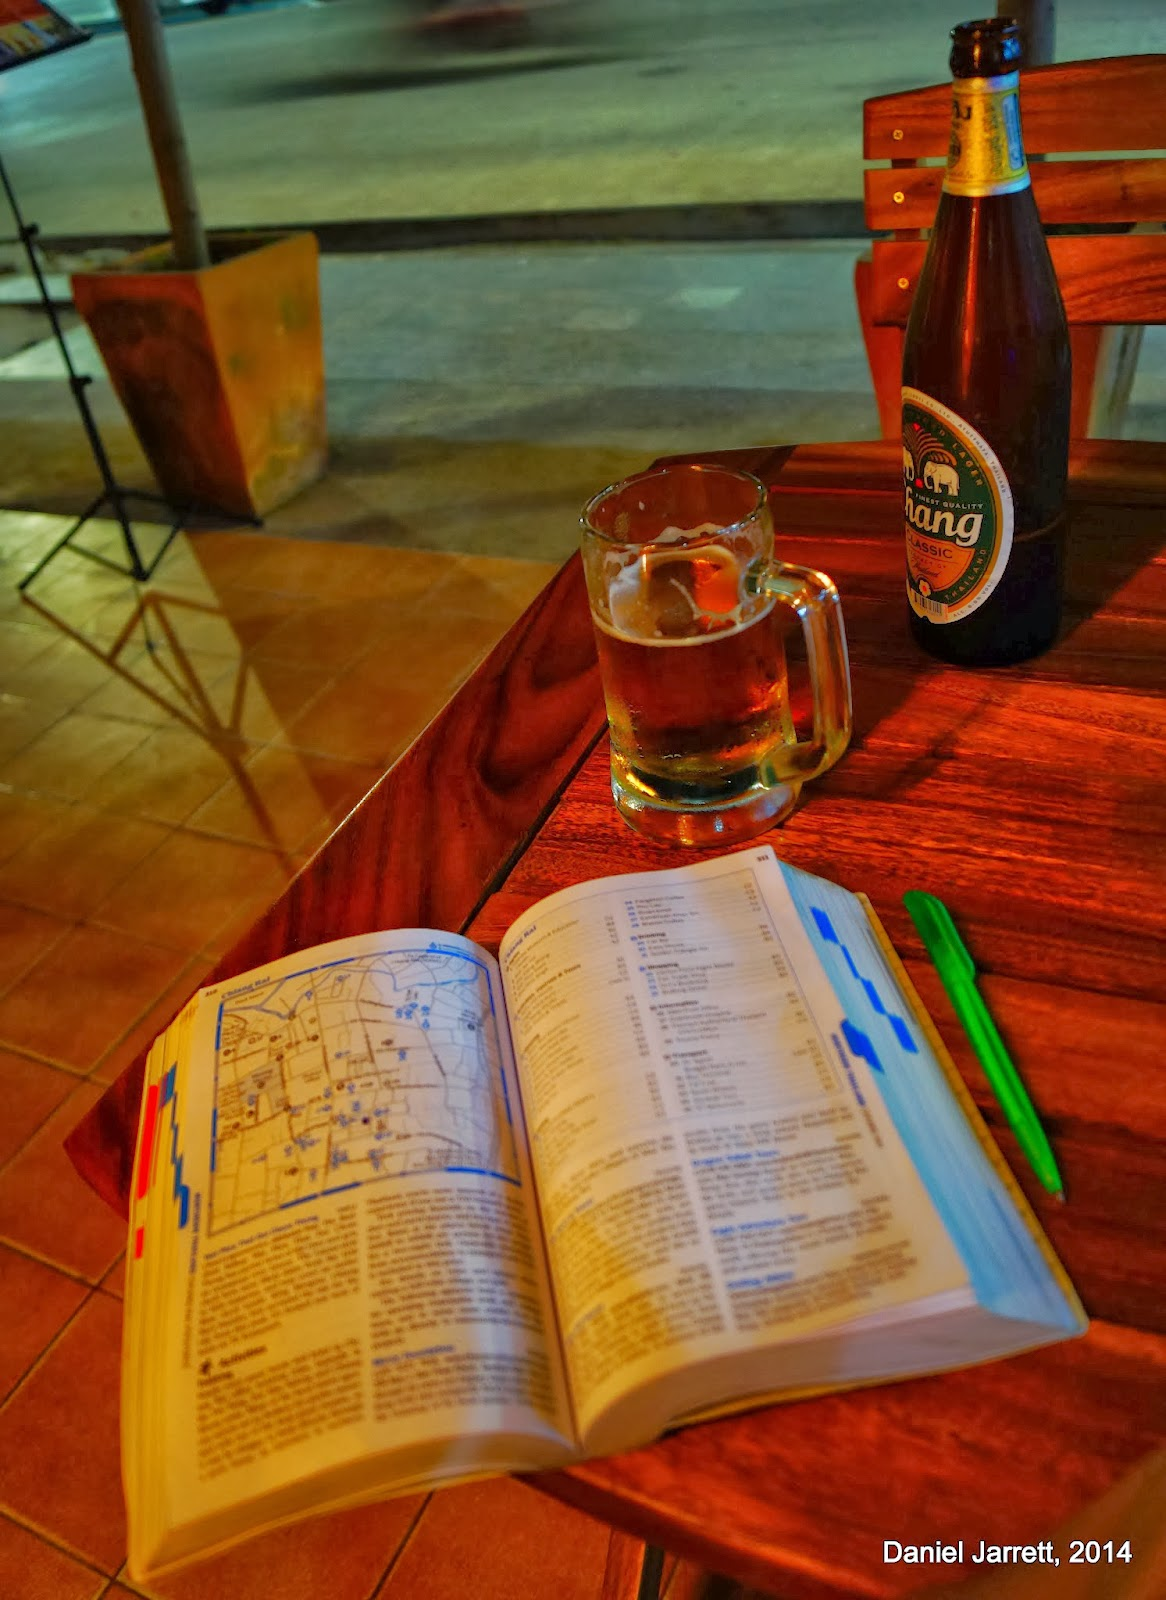 Chiang Rai Beer and Guide